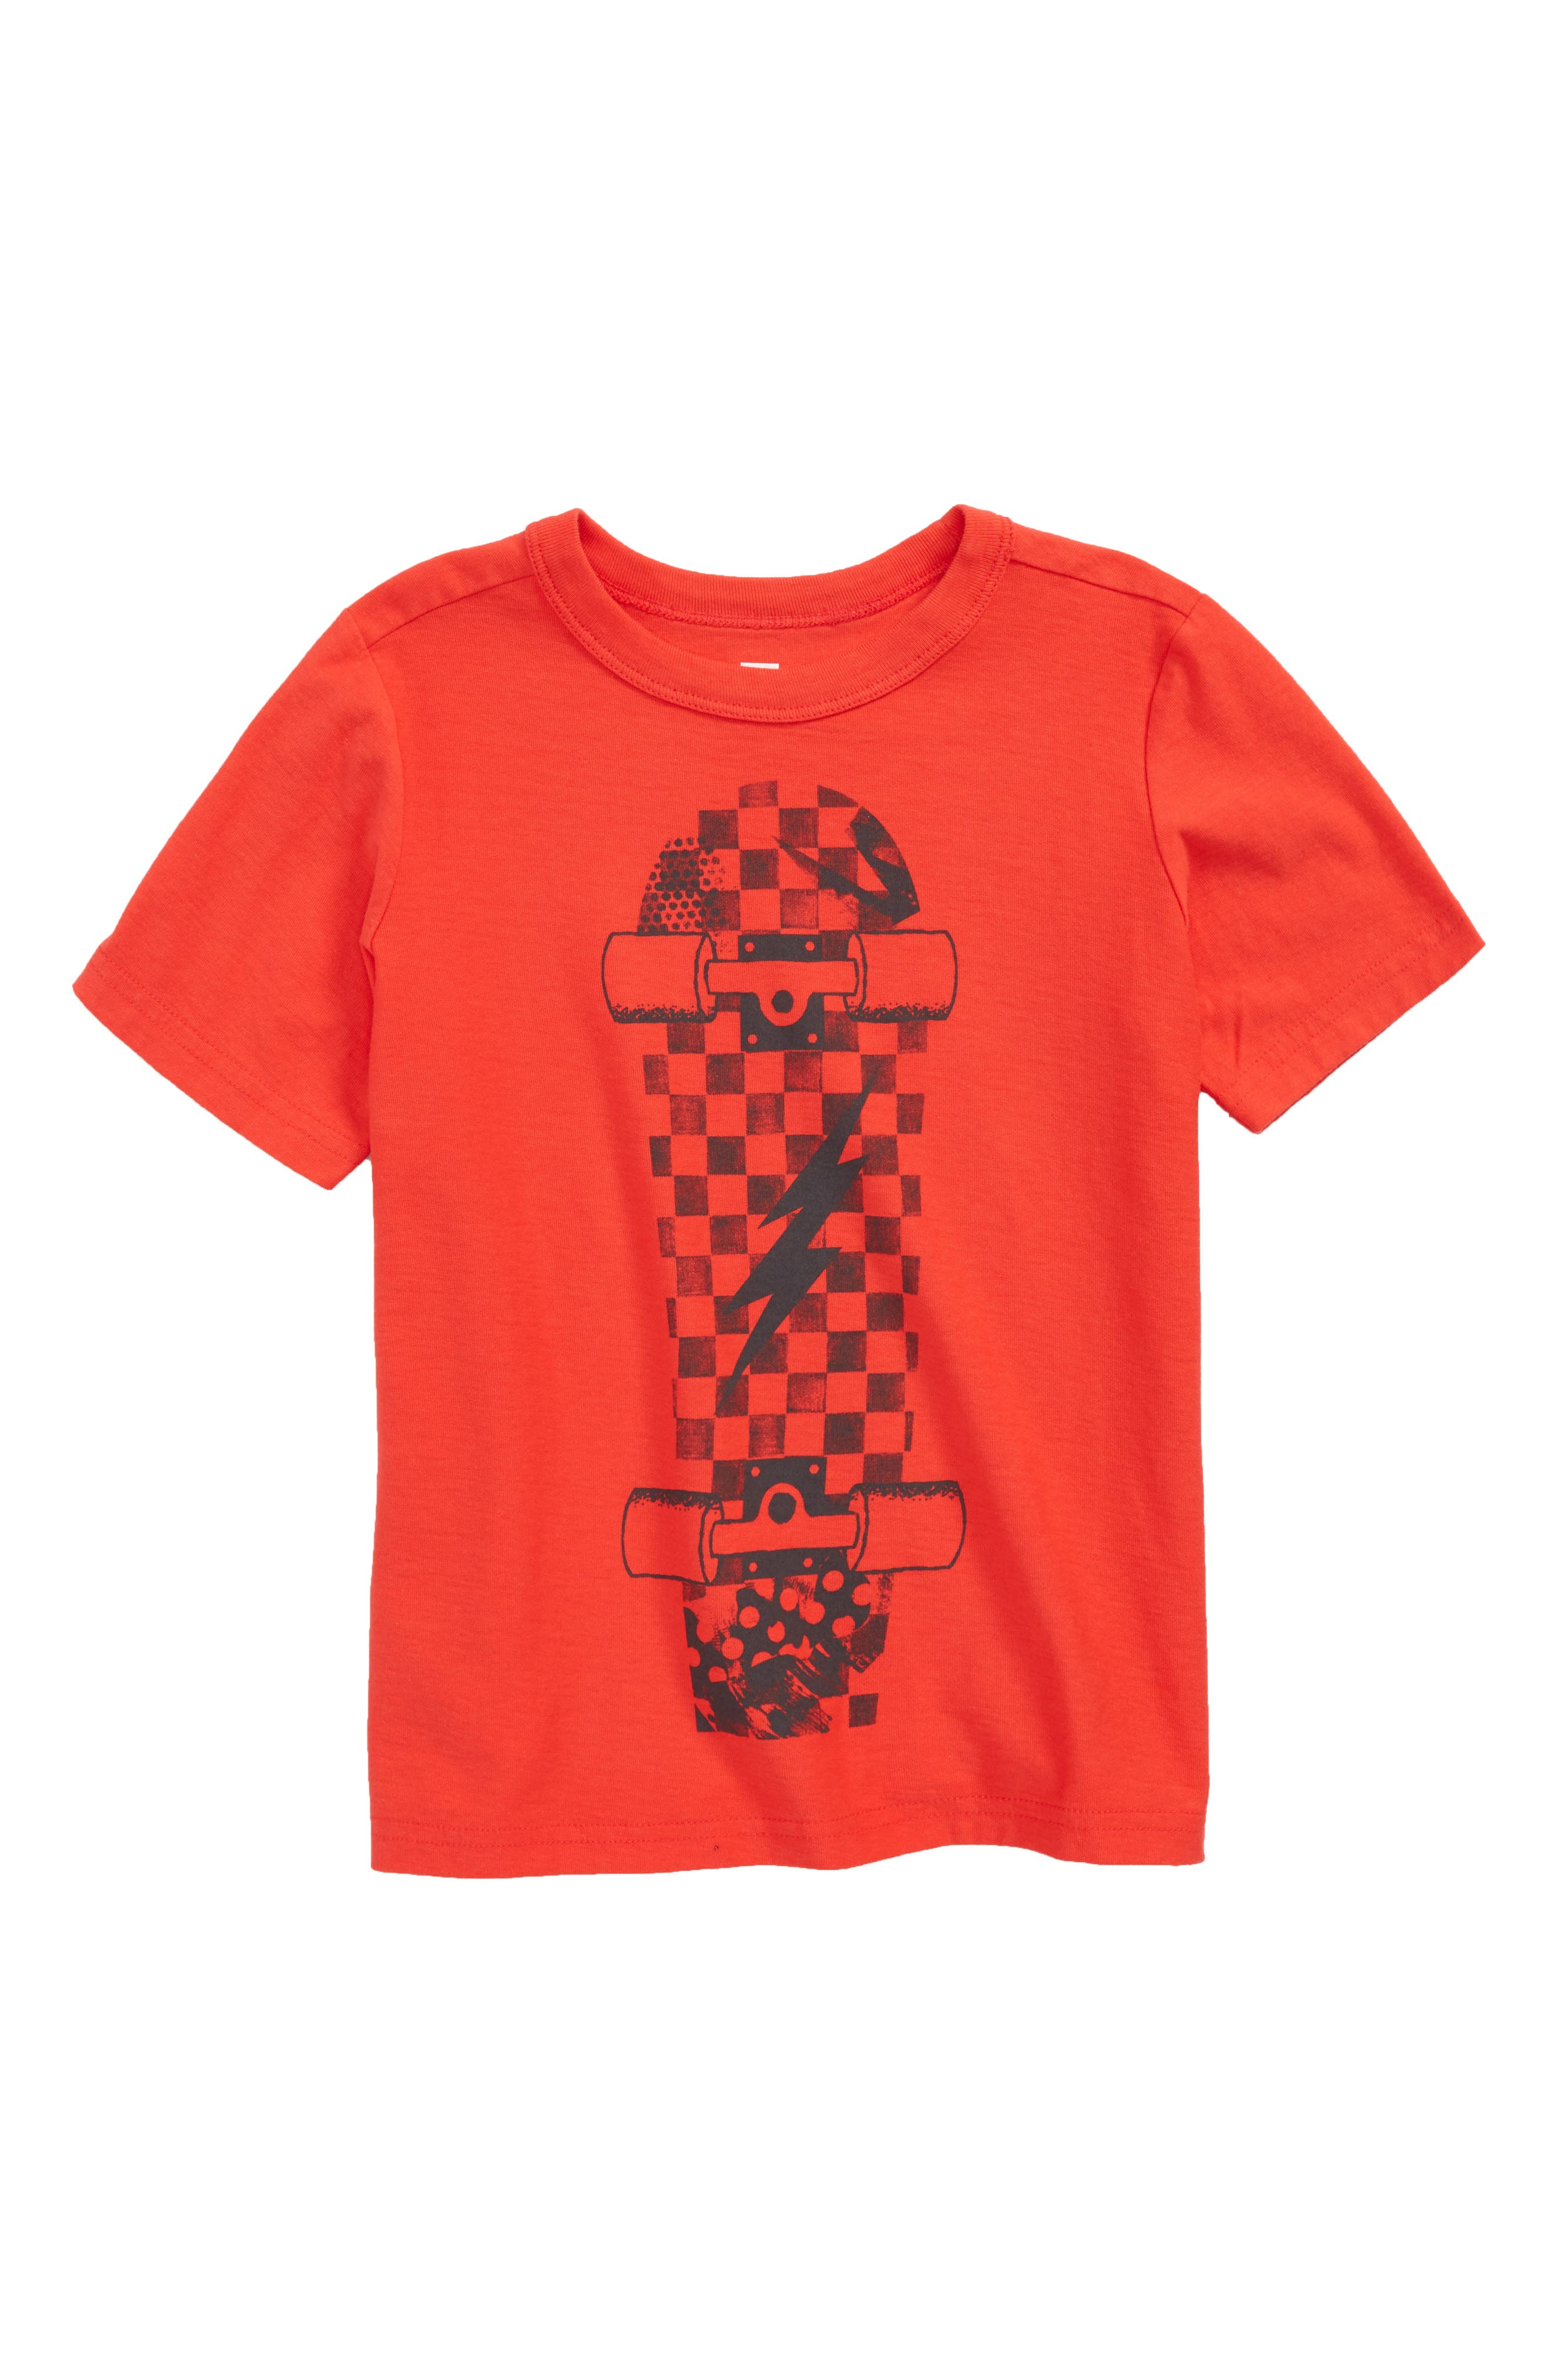 Skateboard T-Shirt,                         Main,                         color, 641